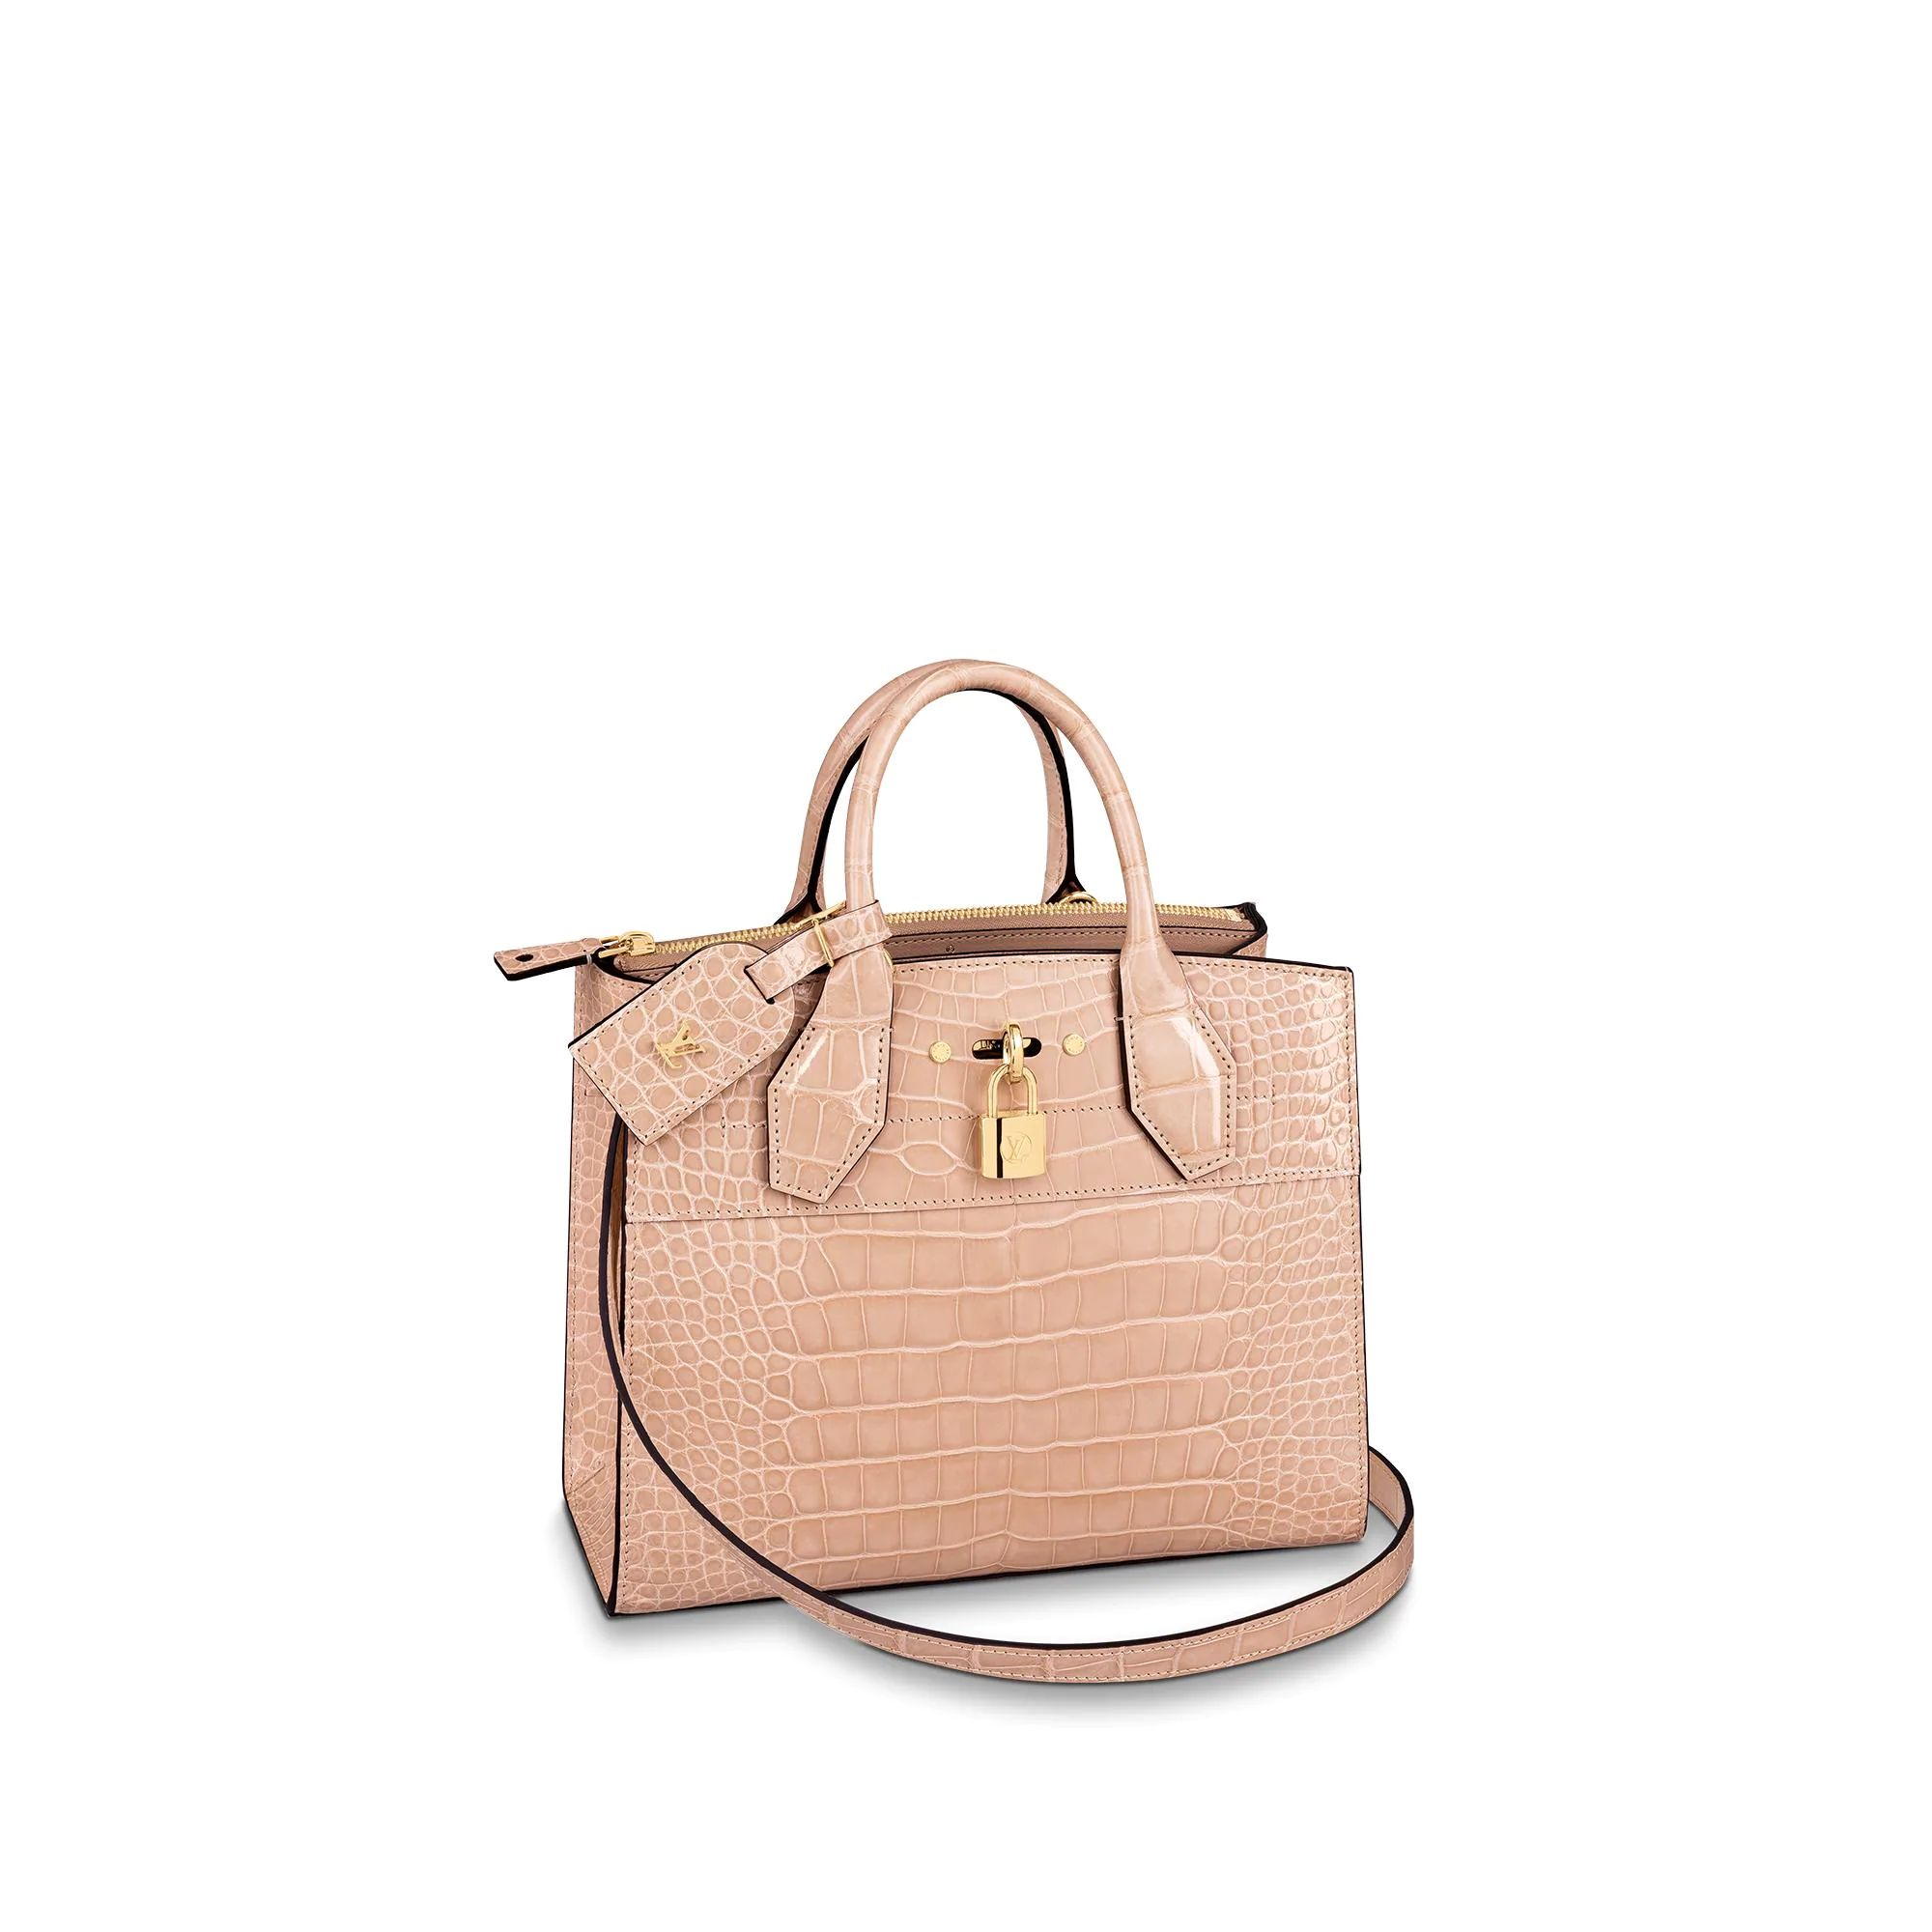 Louis Vuitton City Steamer PM Top Handle Bag in Glossy Crocodile Leather N95197 Nude bag